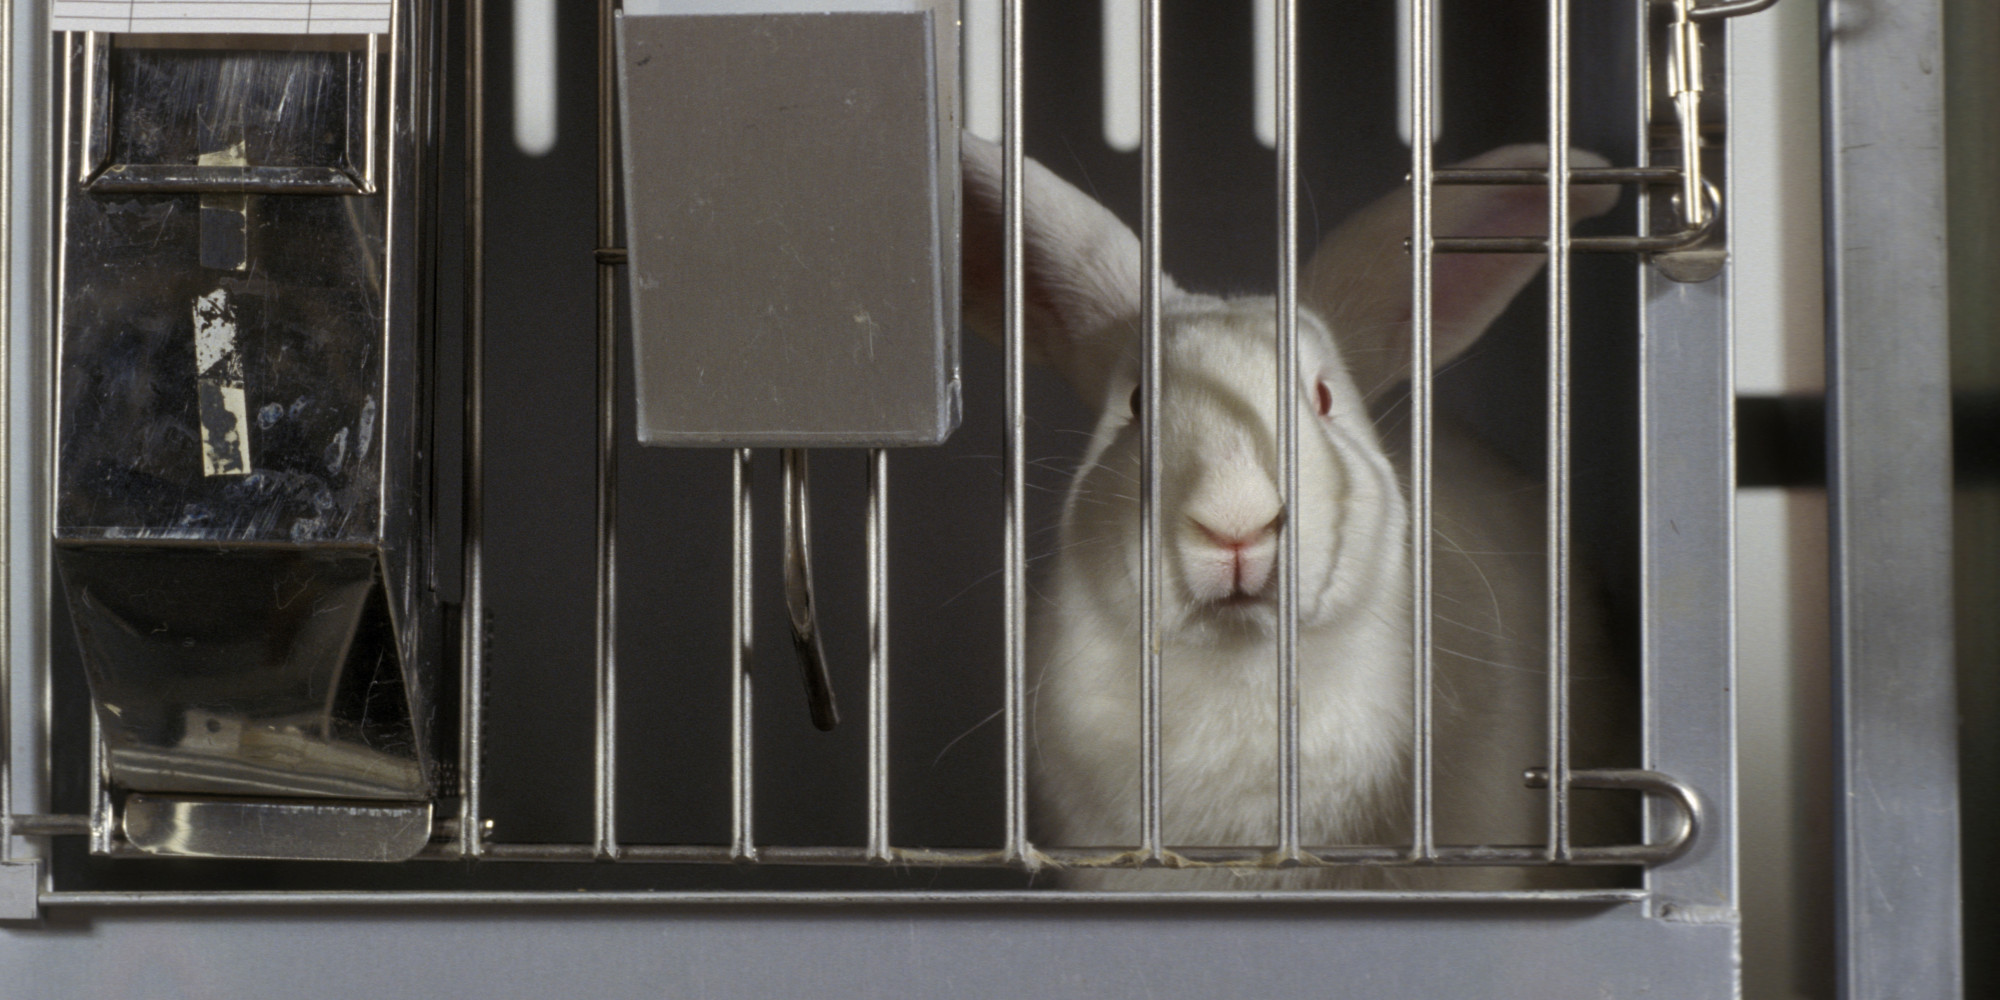 animal testing testing 1 2 3 Treatments for animals developed using animal testing also include pacemakers for heart disease and remedies 1 animal testing has contributed to many life-saving.